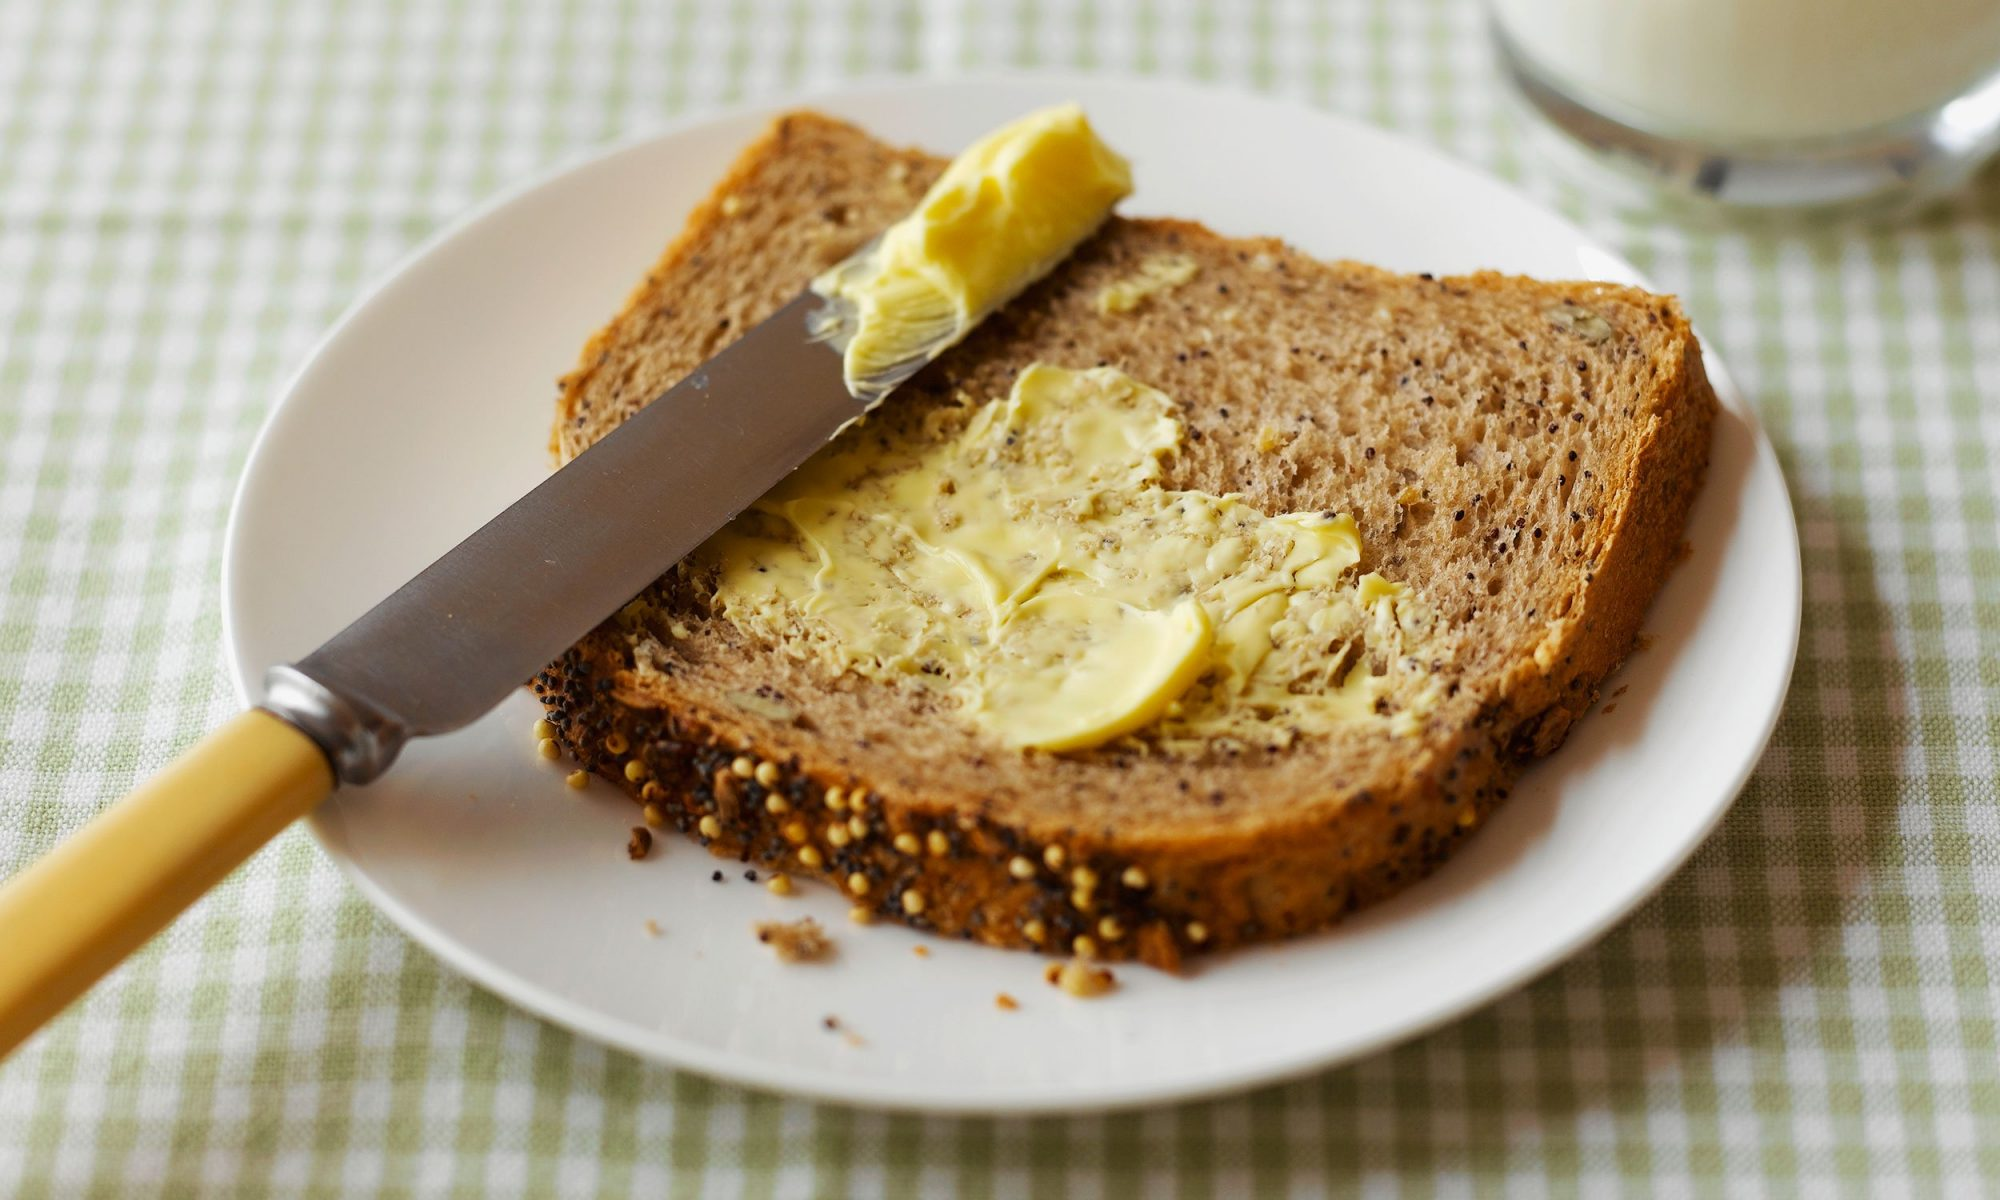 Butter spread on bread with knife